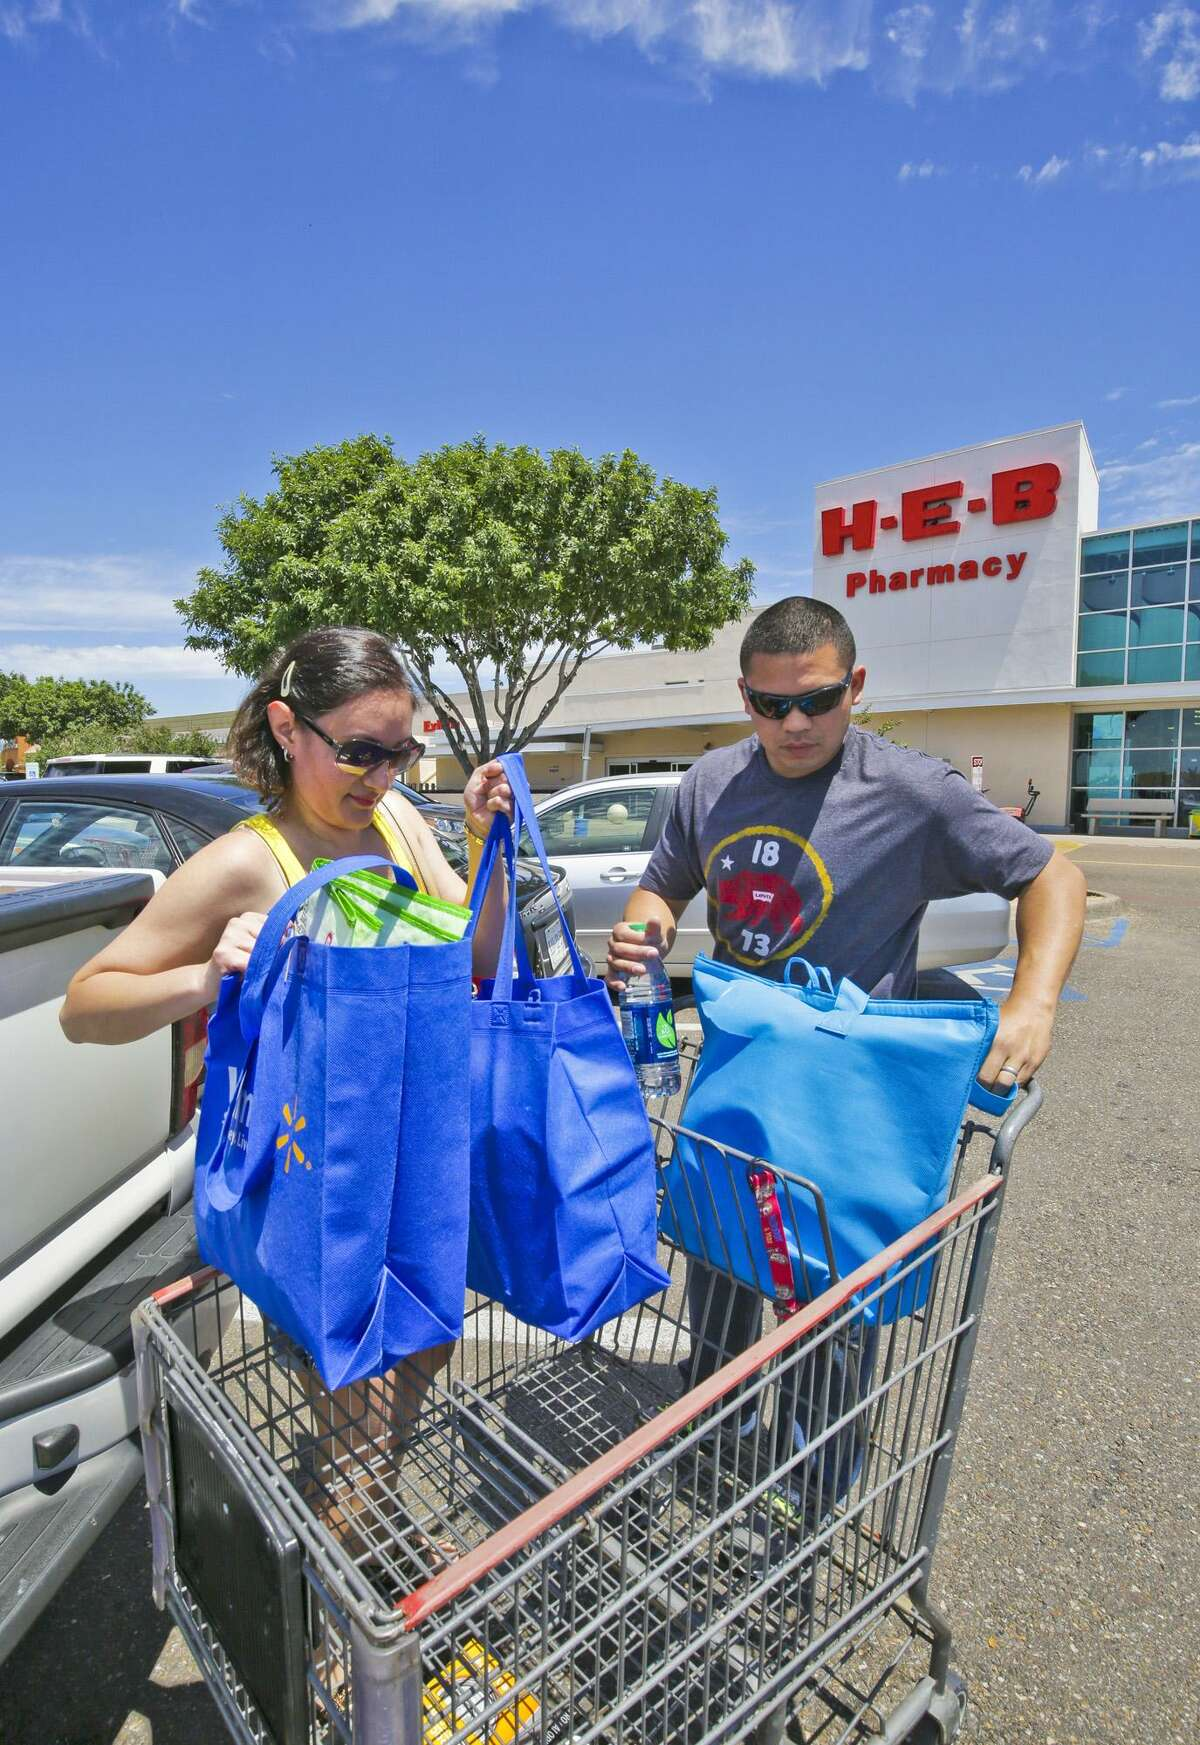 Gladys Delgado and Jose Delgado load reusable grocery bags into their truck after shopping at the H-E-B store on McPherson Rd and Del Mar Blvd in this file photo.